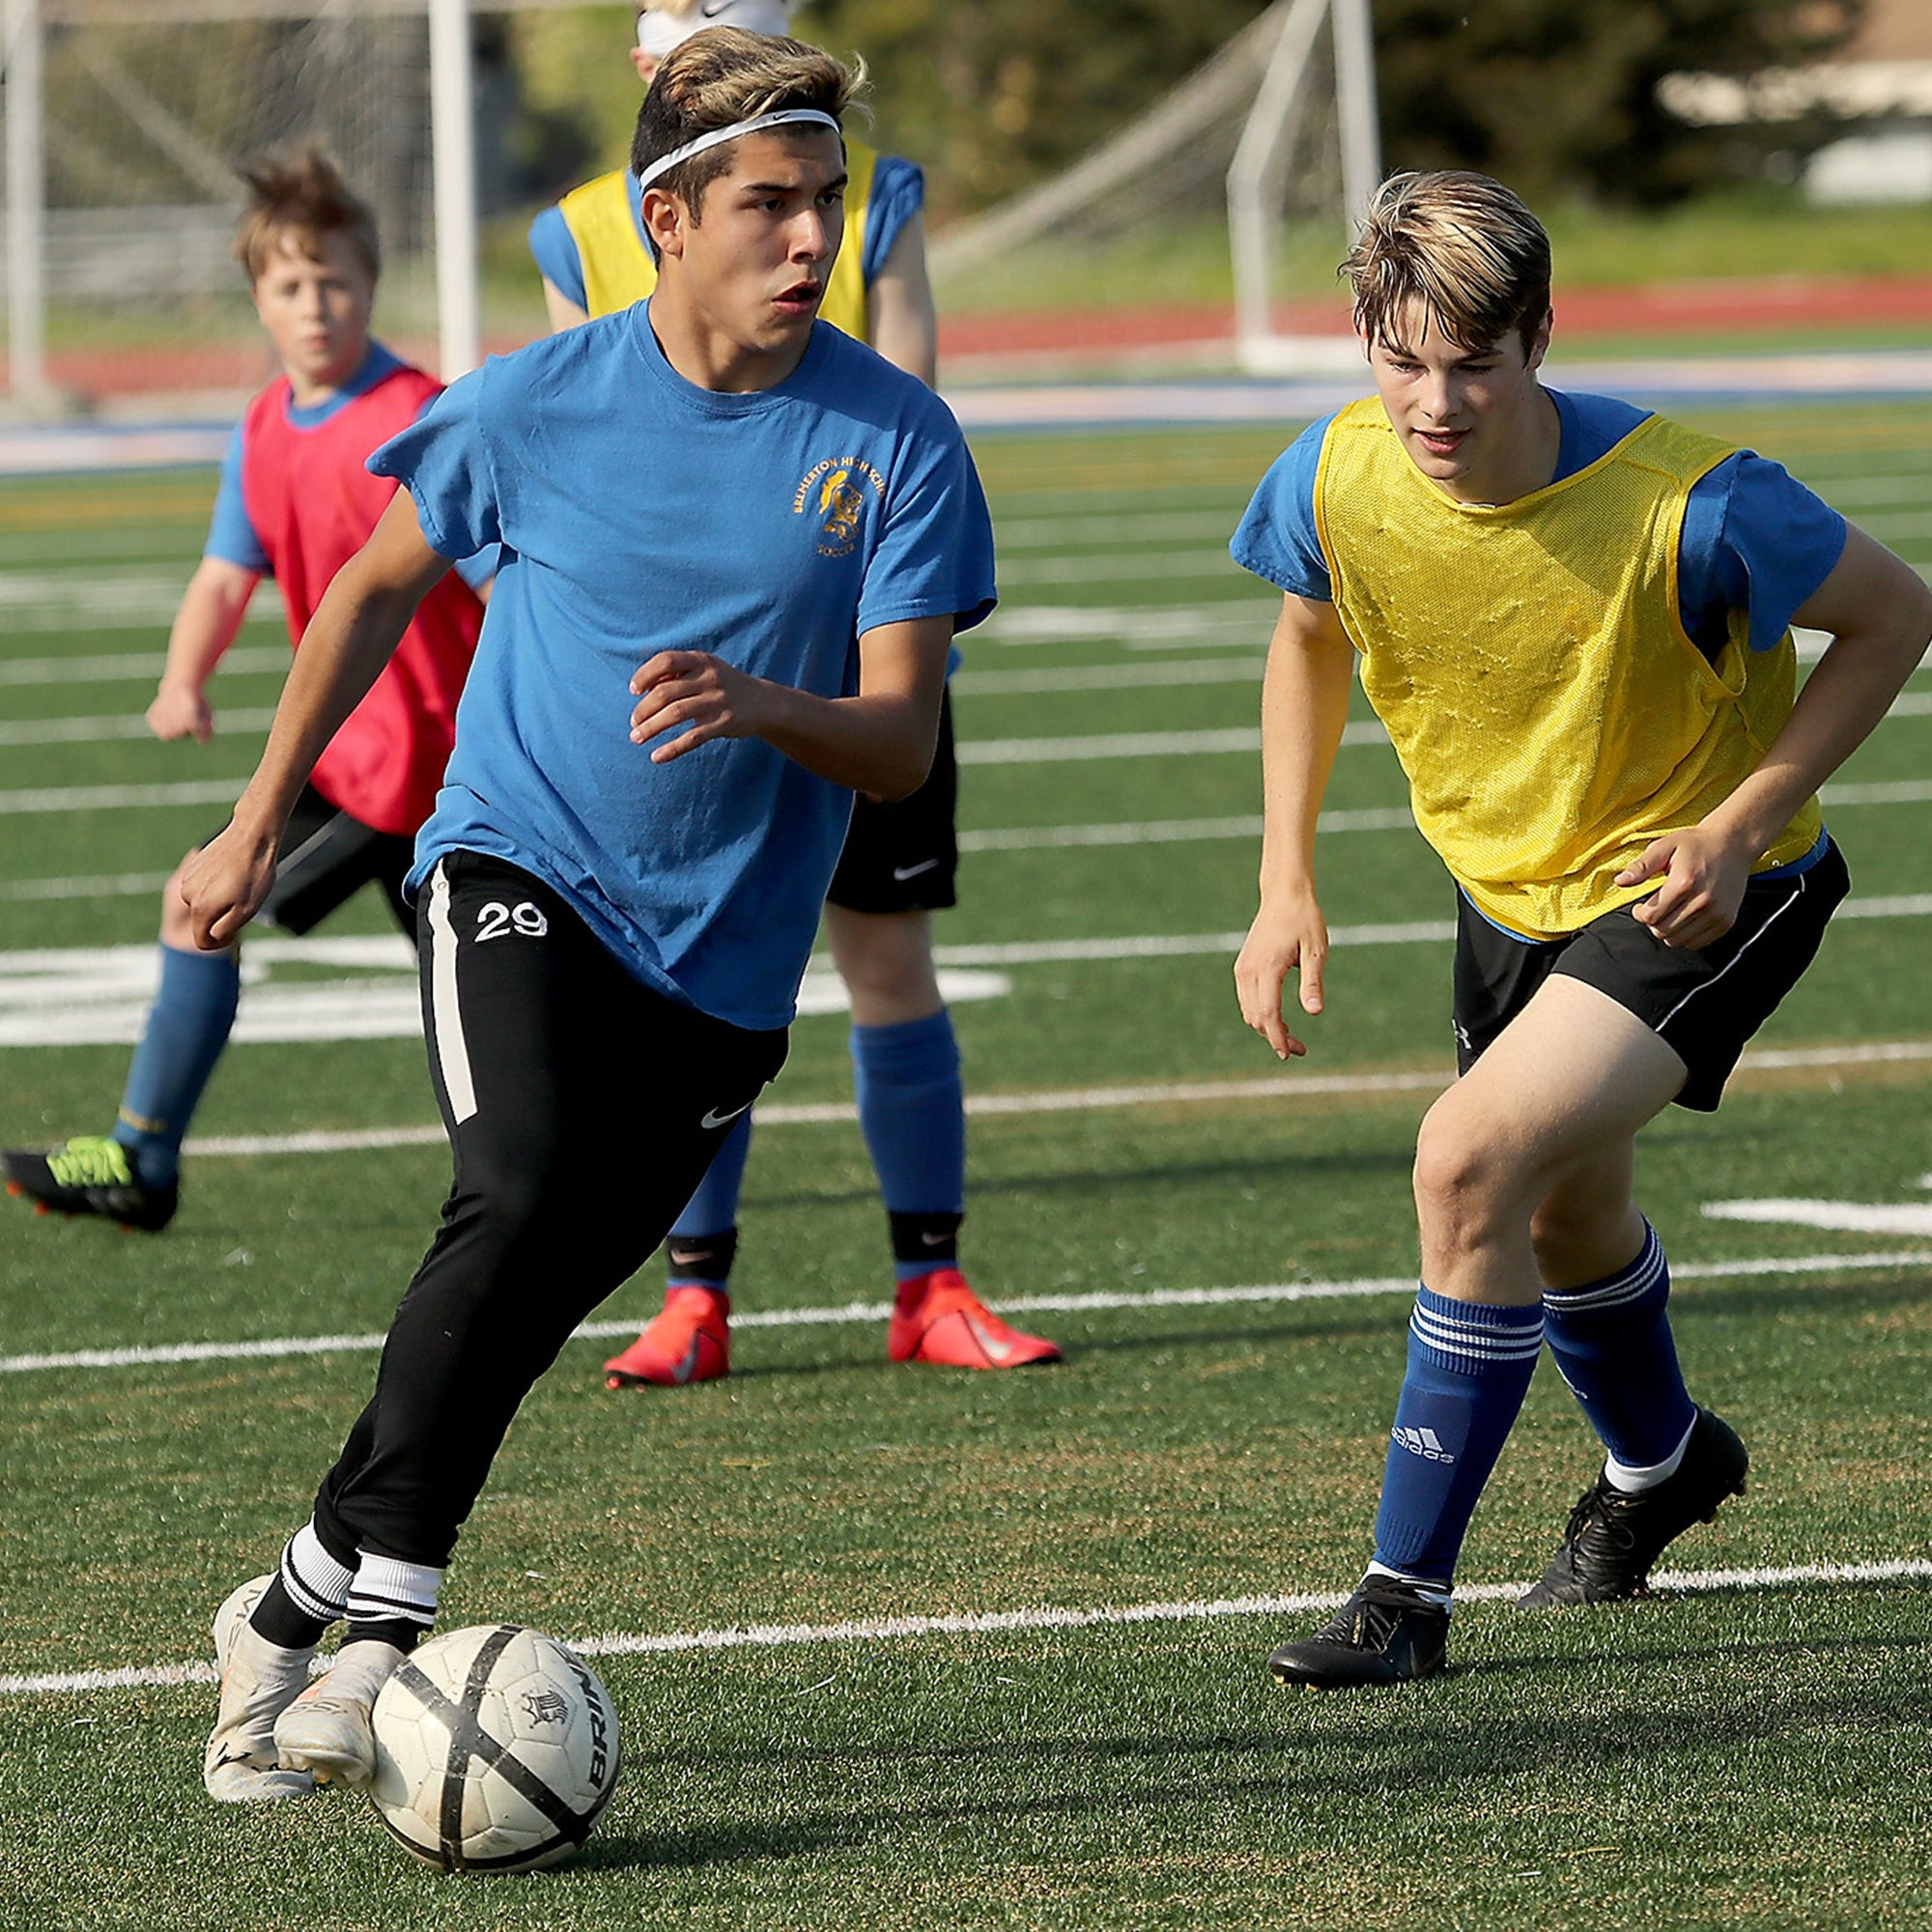 Bremerton boys soccer shows fight to make playoffs